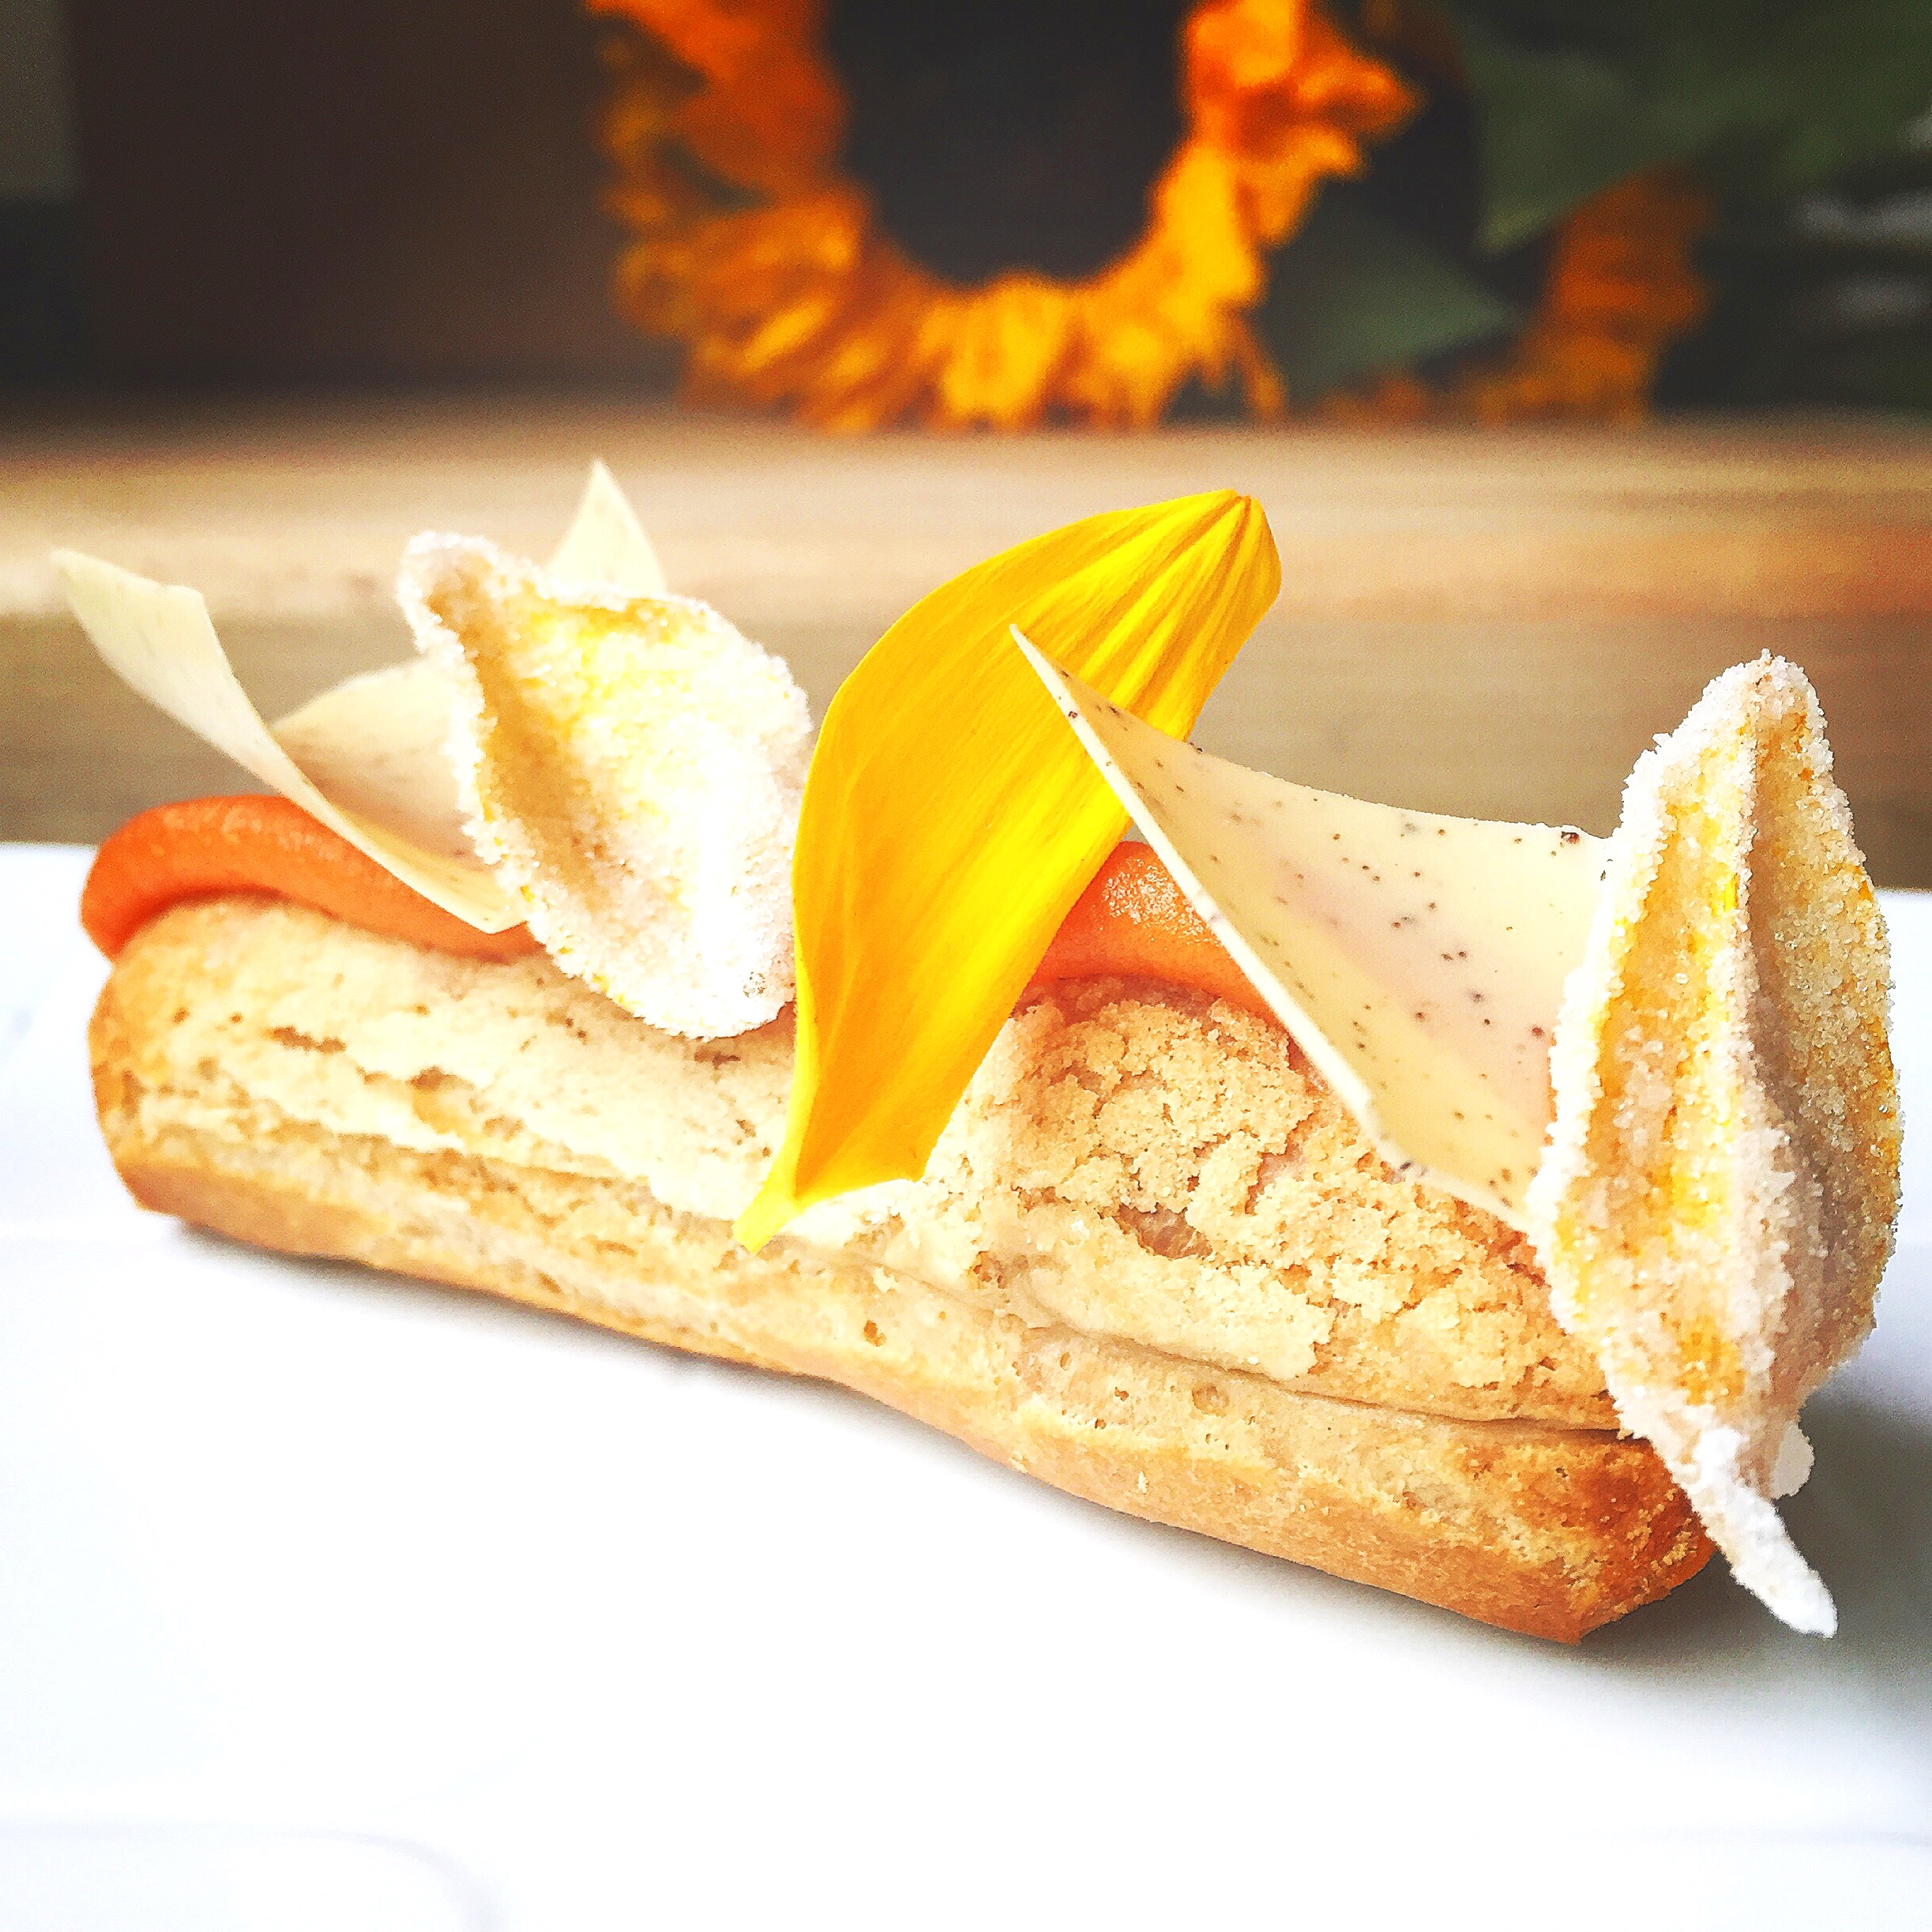 Sweet Potato and Coffee Eclair